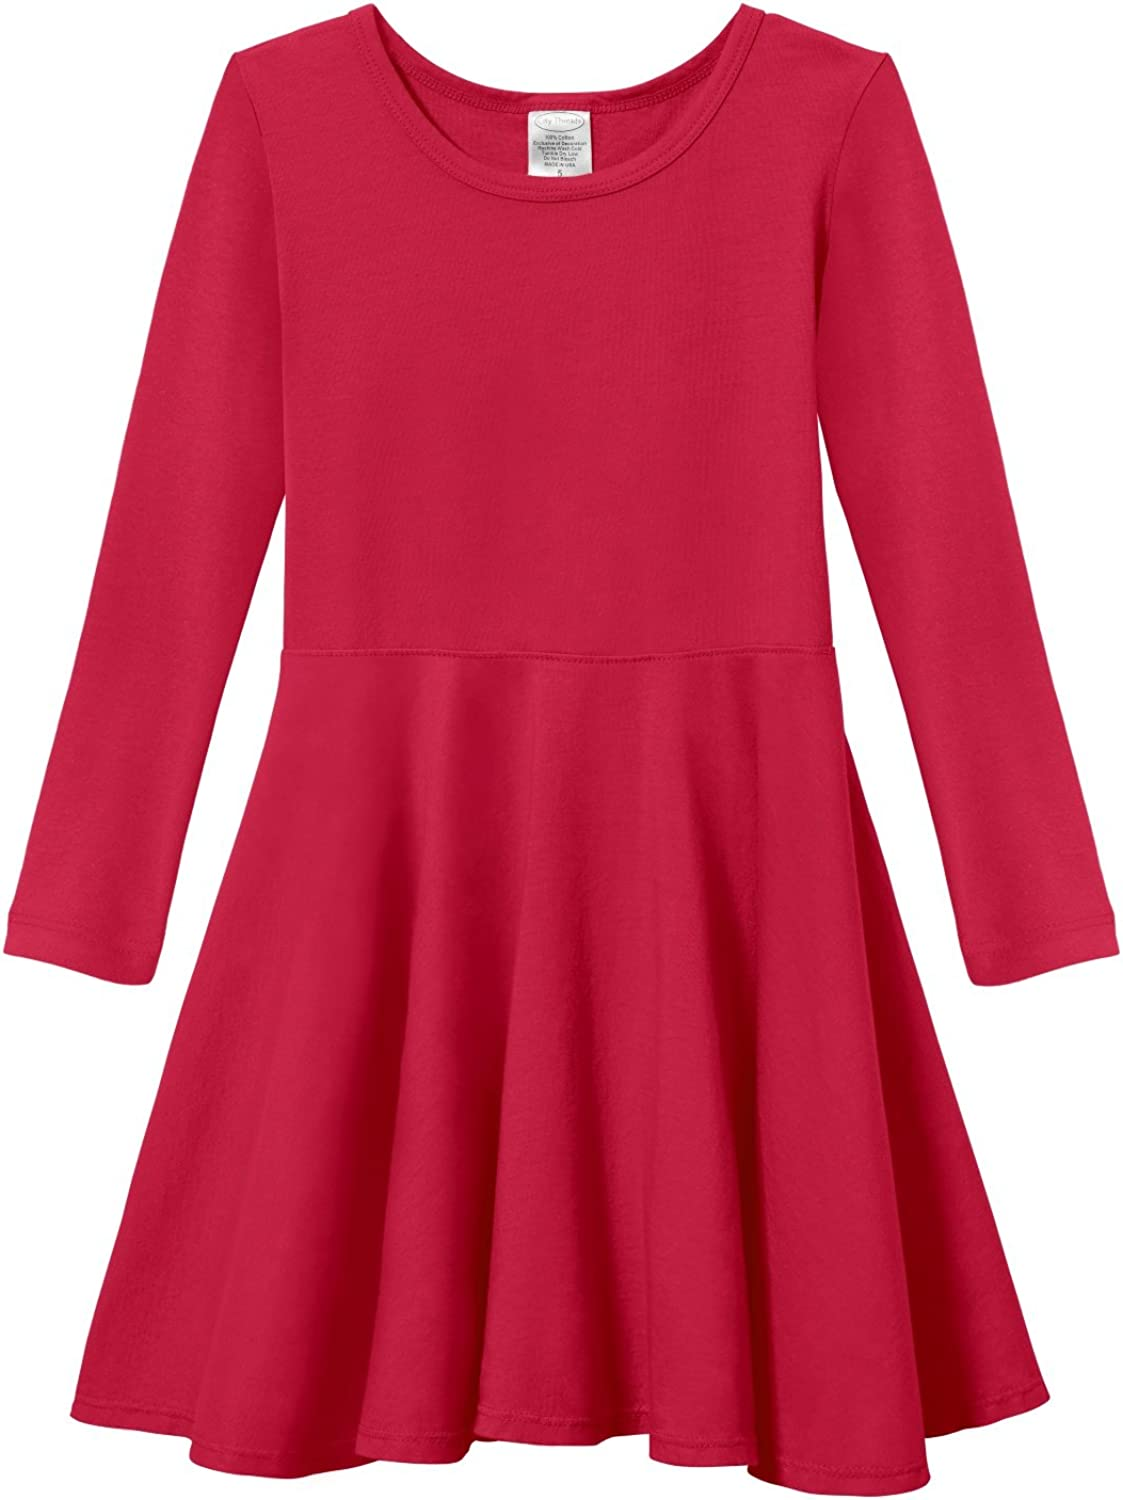 City Threads Girls Twirly Skater Party Dress - All Cotton Made in USA